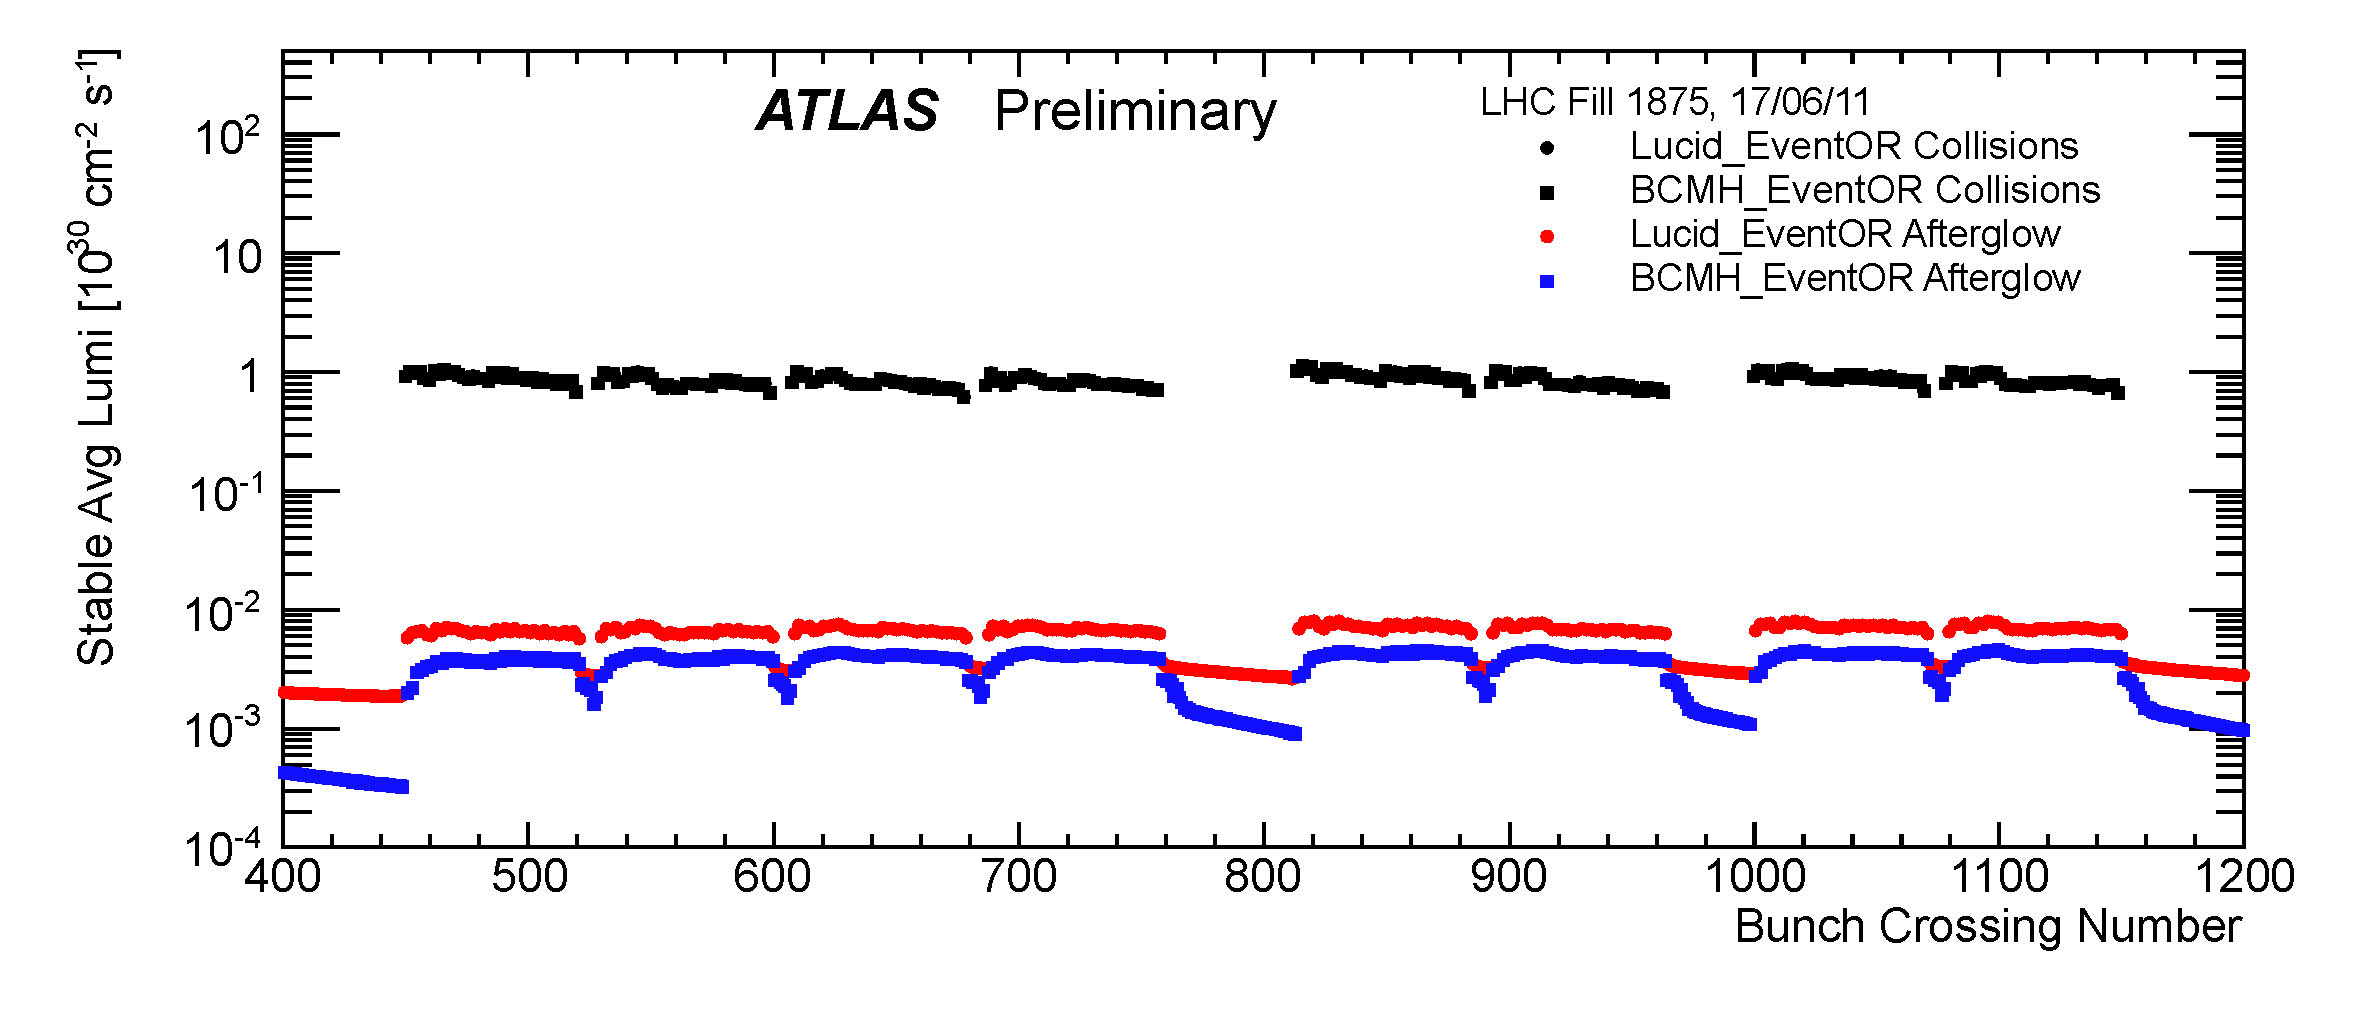 https://atlas.web.cern.ch/Atlas/GROUPS/DATAPREPARATION/PublicPlots/2011/Luminosity/afterglow.jpg